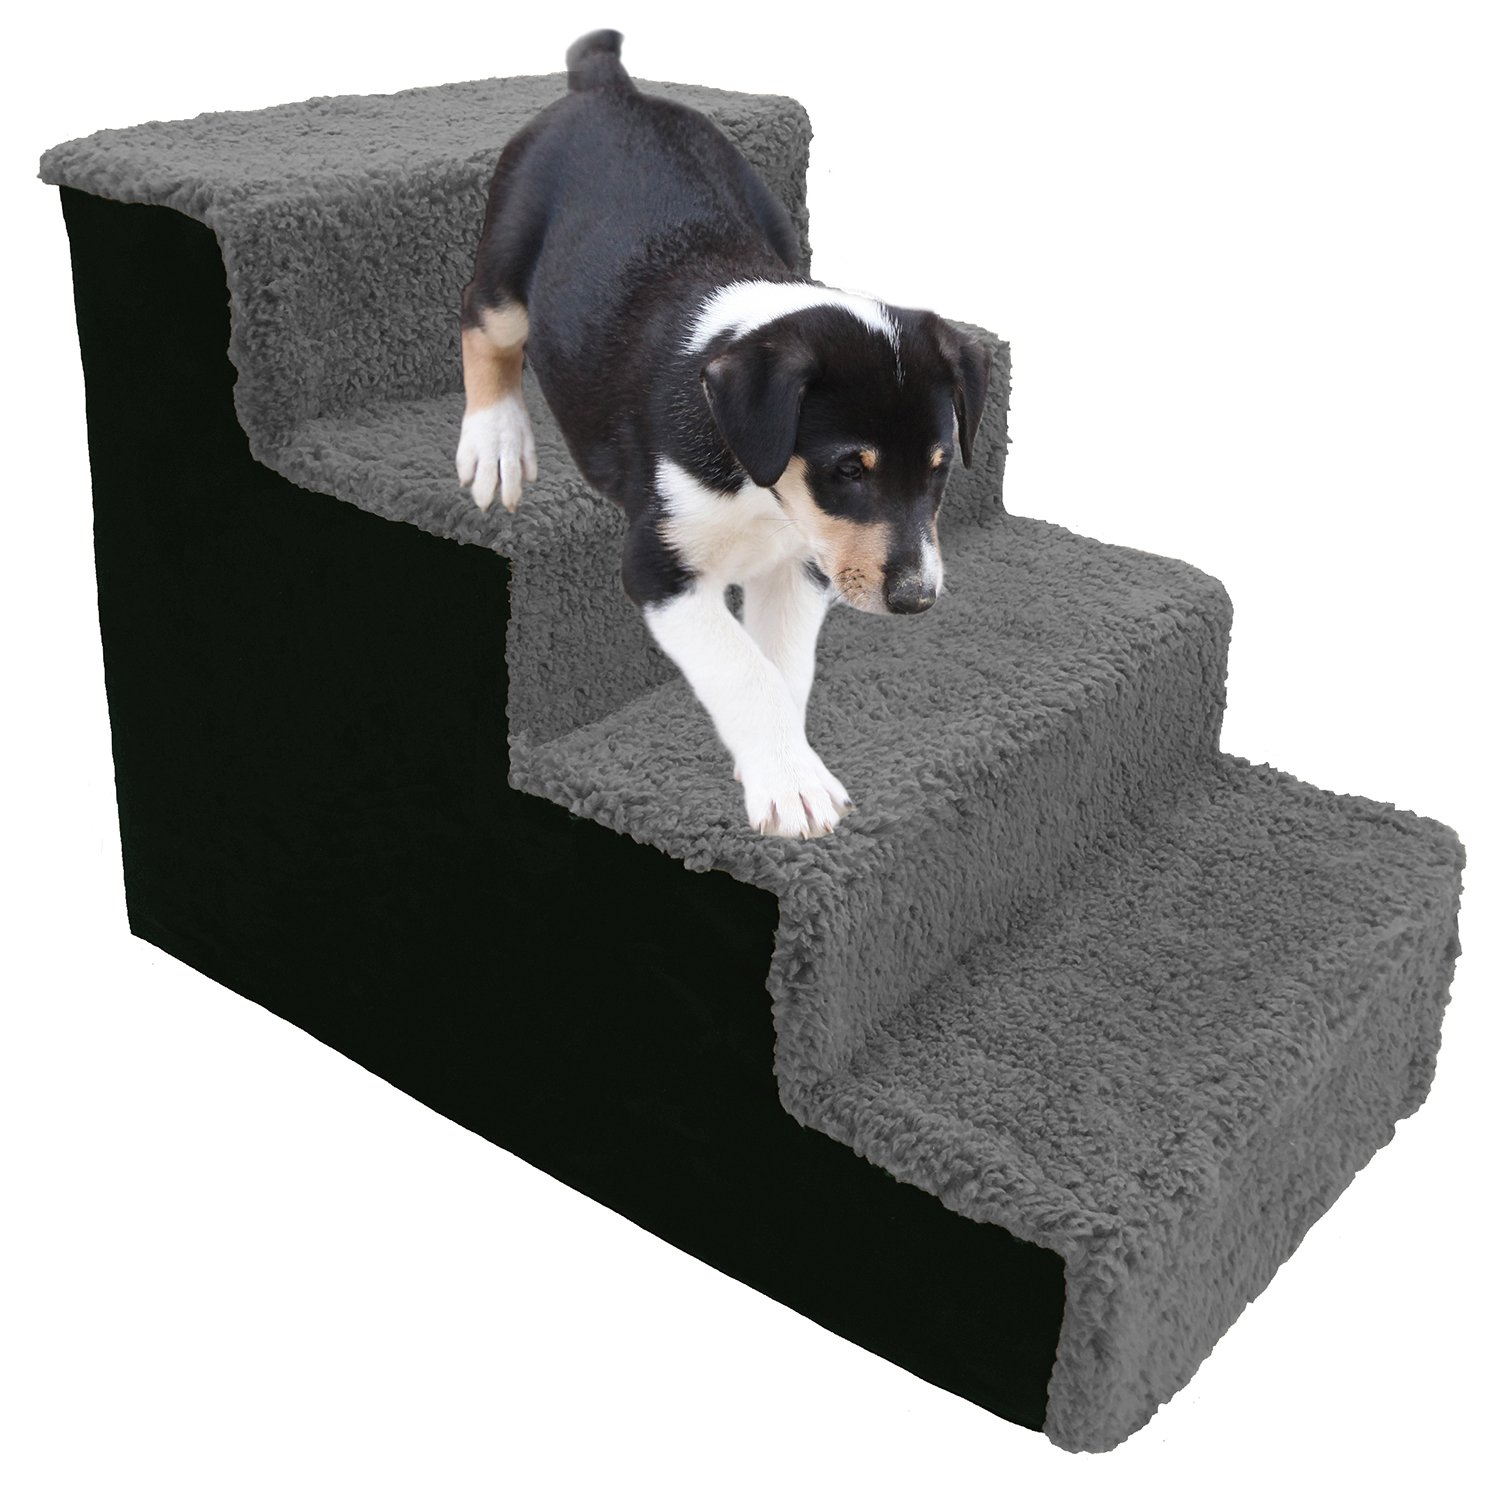 Etonnant Get Quotations · Homebase Dog Stairs For Couch 3 Steps, 4 Steps, Or 5 Dog  Steps For